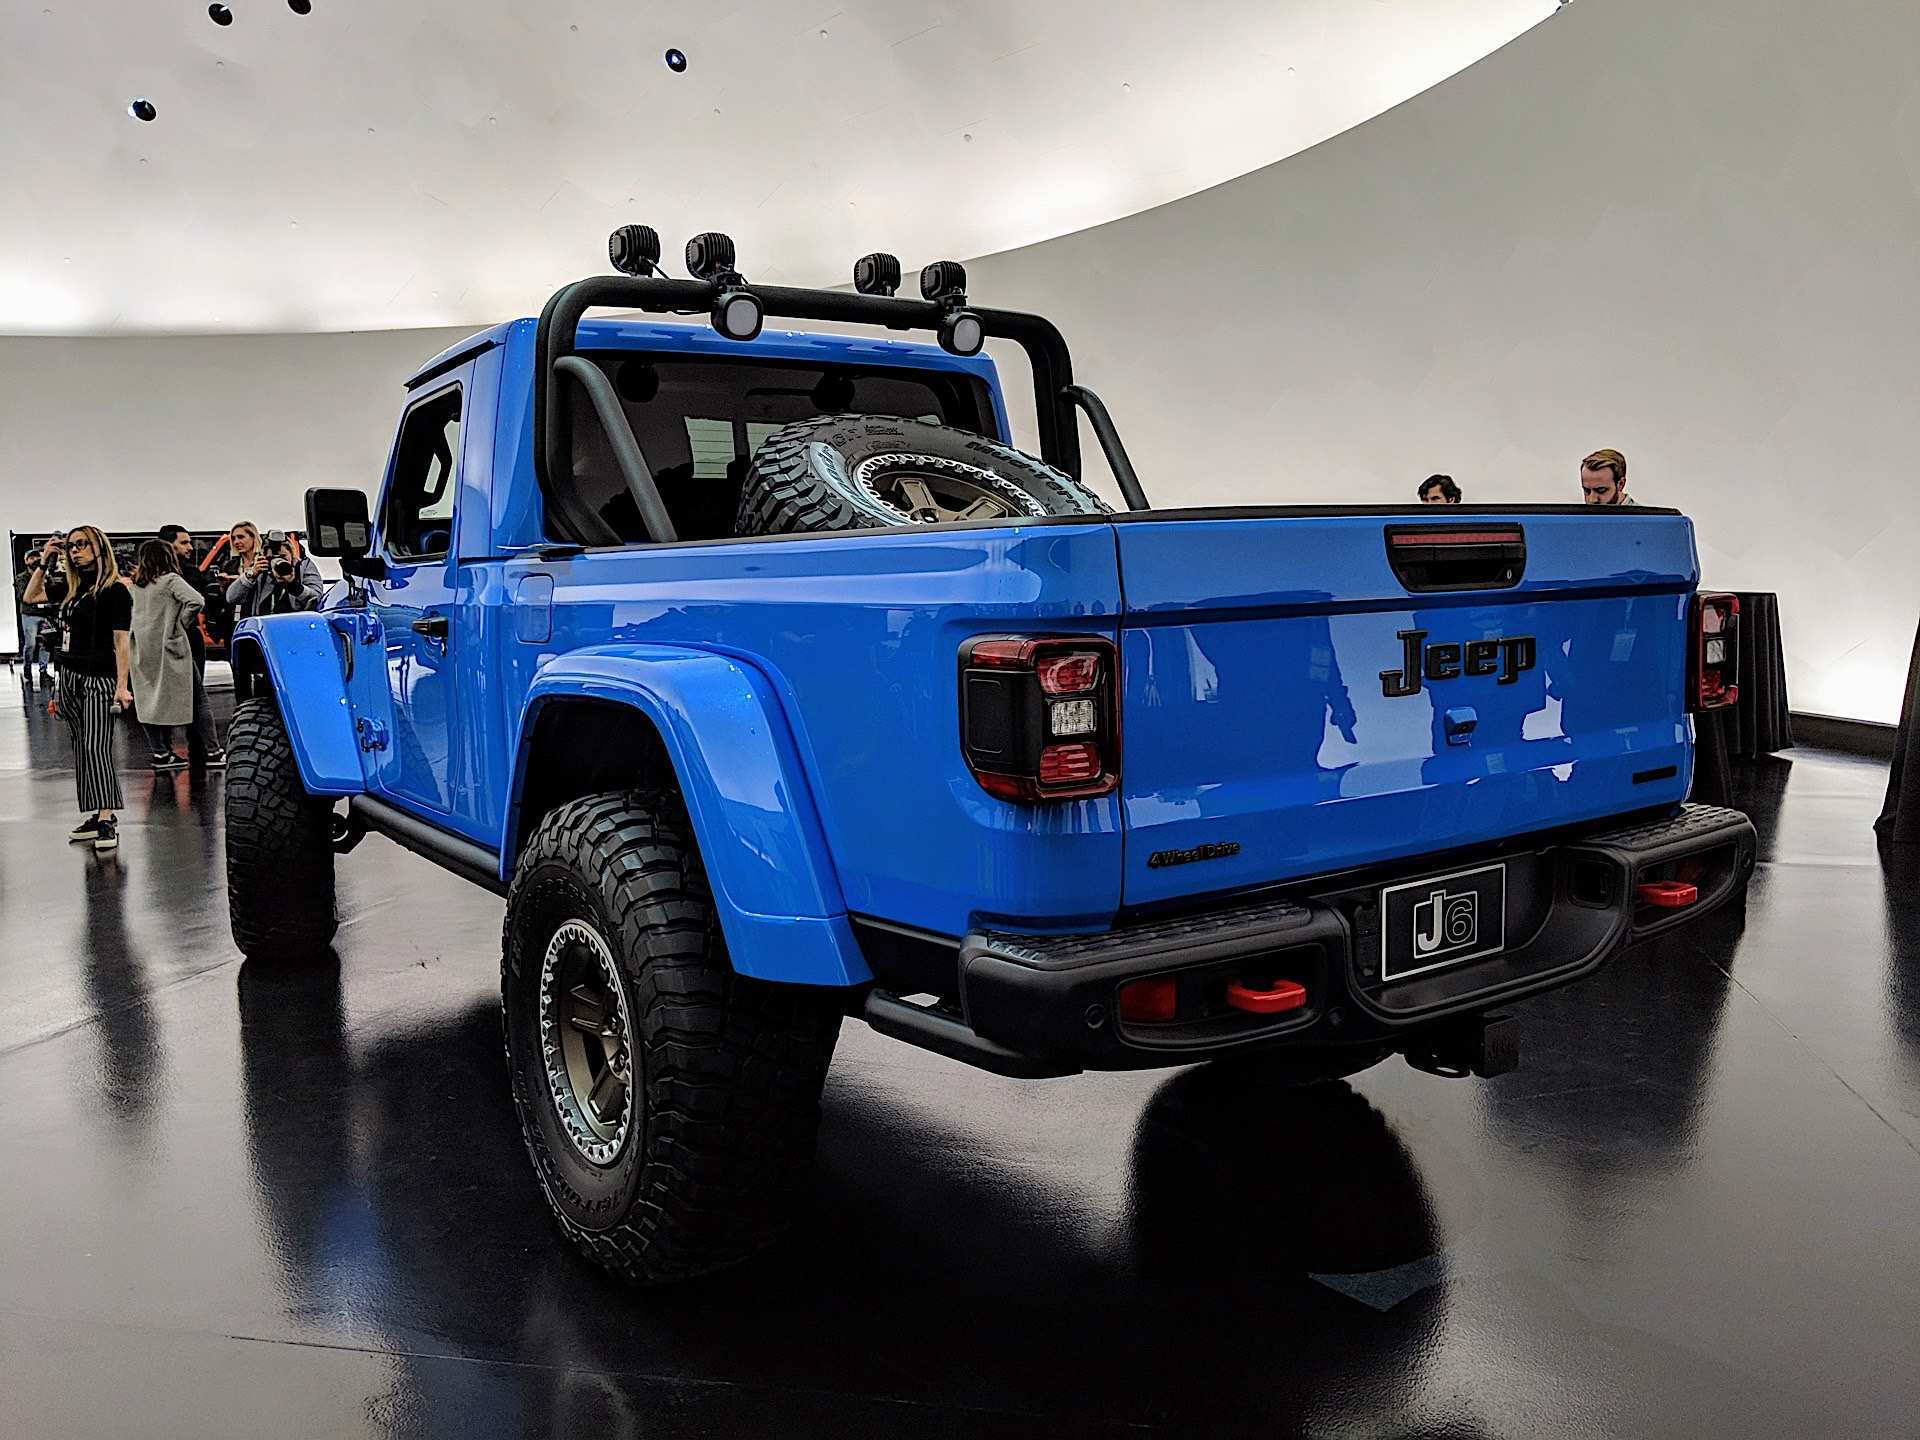 75 New 2020 Jeep Gladiator 2 Door Release Date